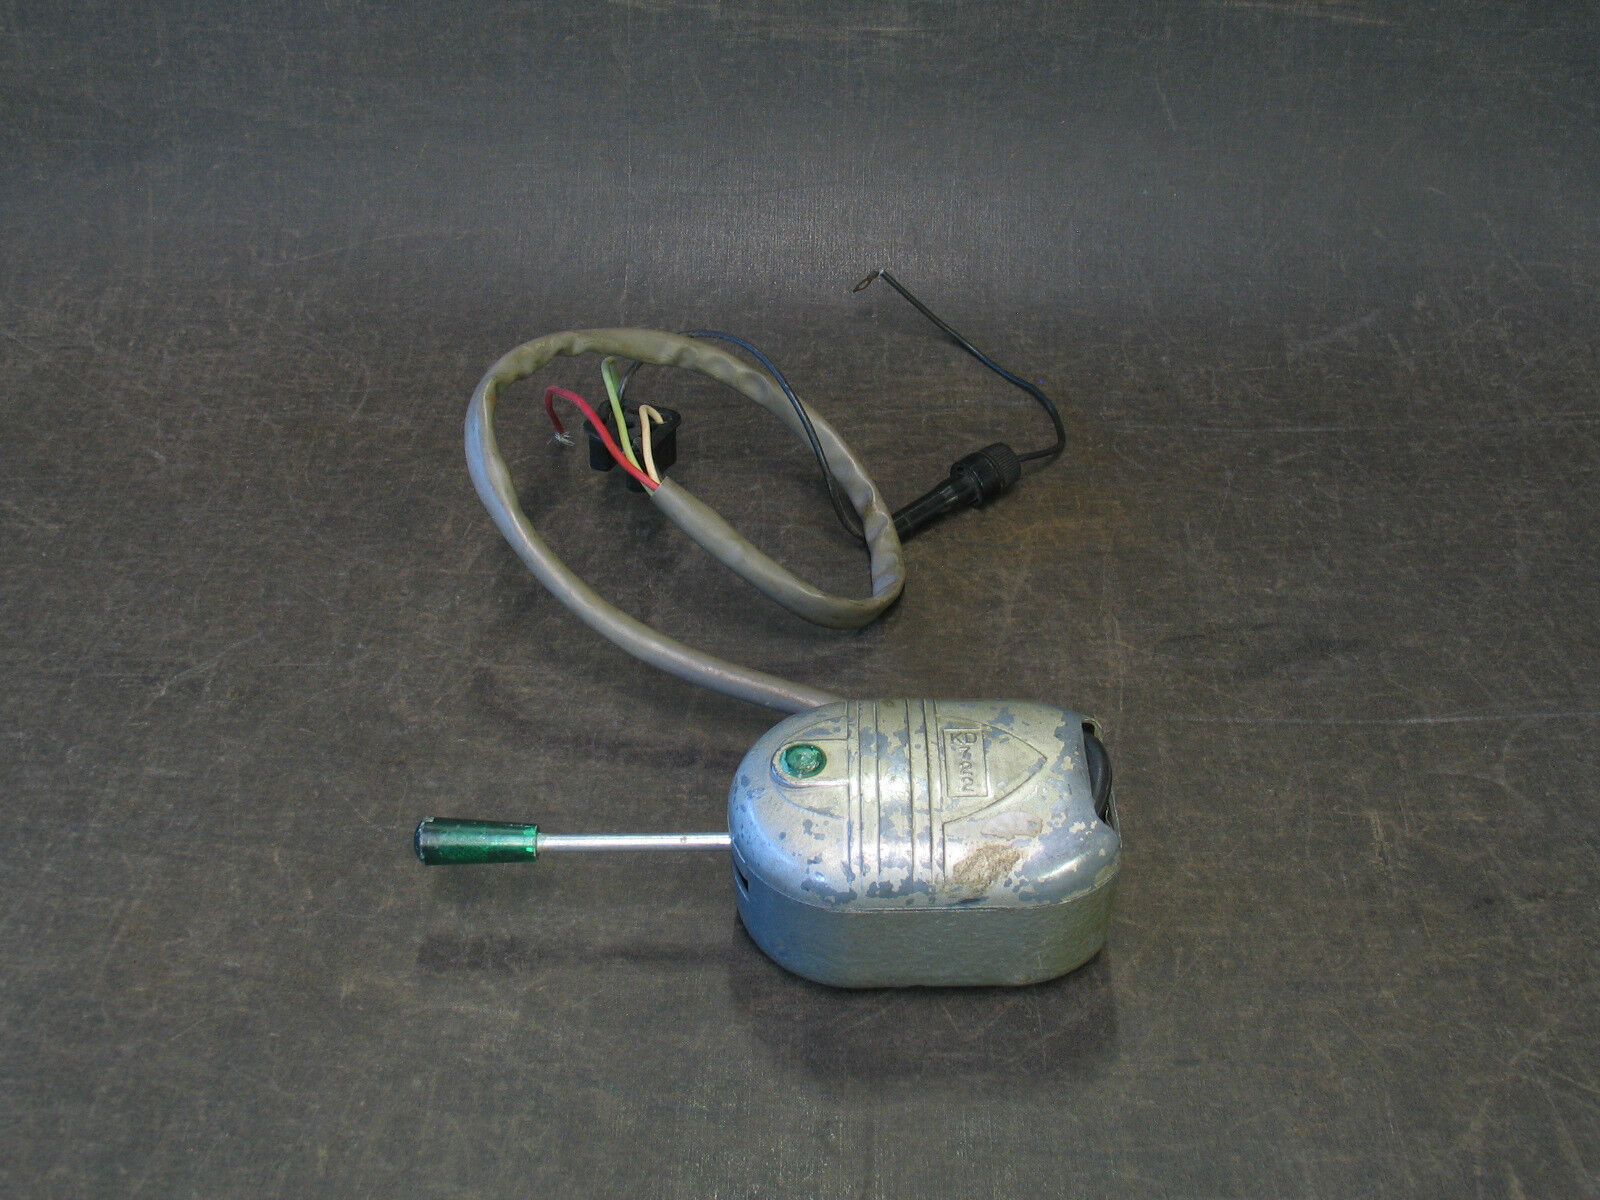 1954 Studebaker Wiring Turn Signal Switch Trusted Schematics Diagram Chevy Blinker Vintage Kd 722 Rat Rod For Sale Flasher